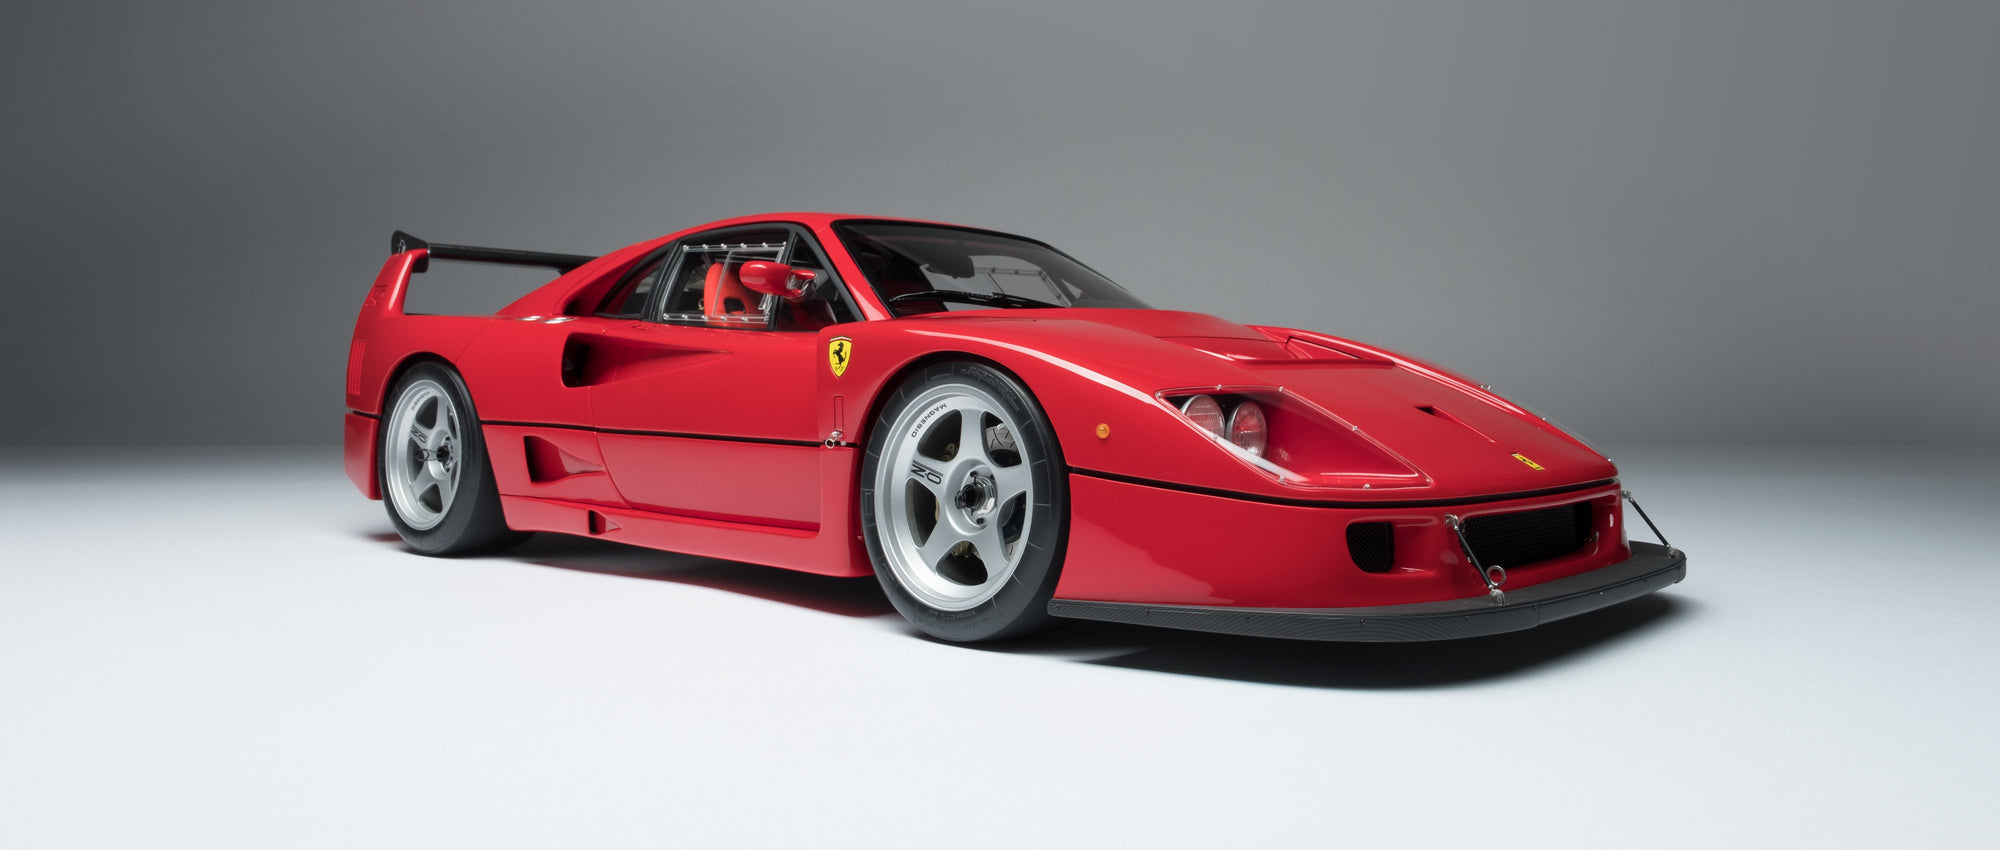 Ferrari F40 Competizione \u2013 Amalgam Collection